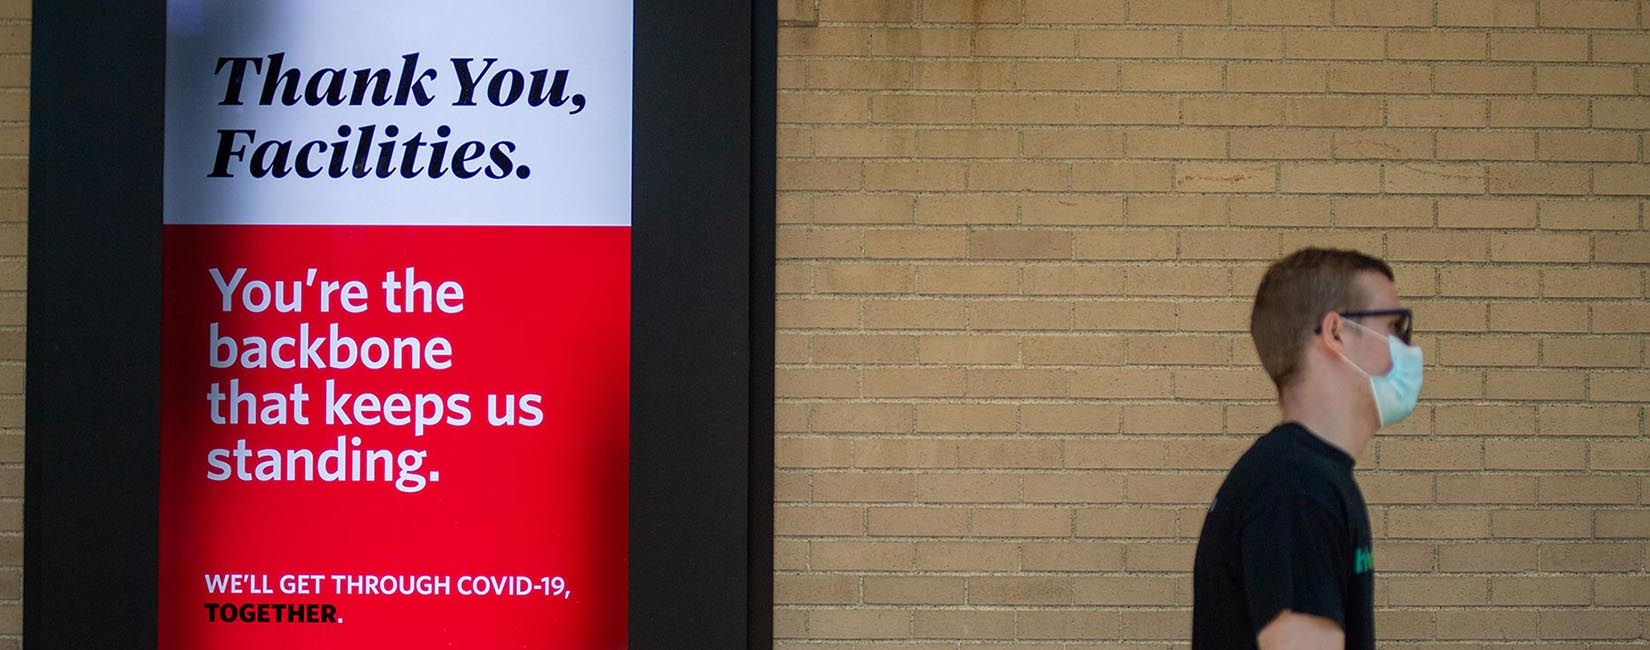 Boston University COVD sign supporting facilities workers.